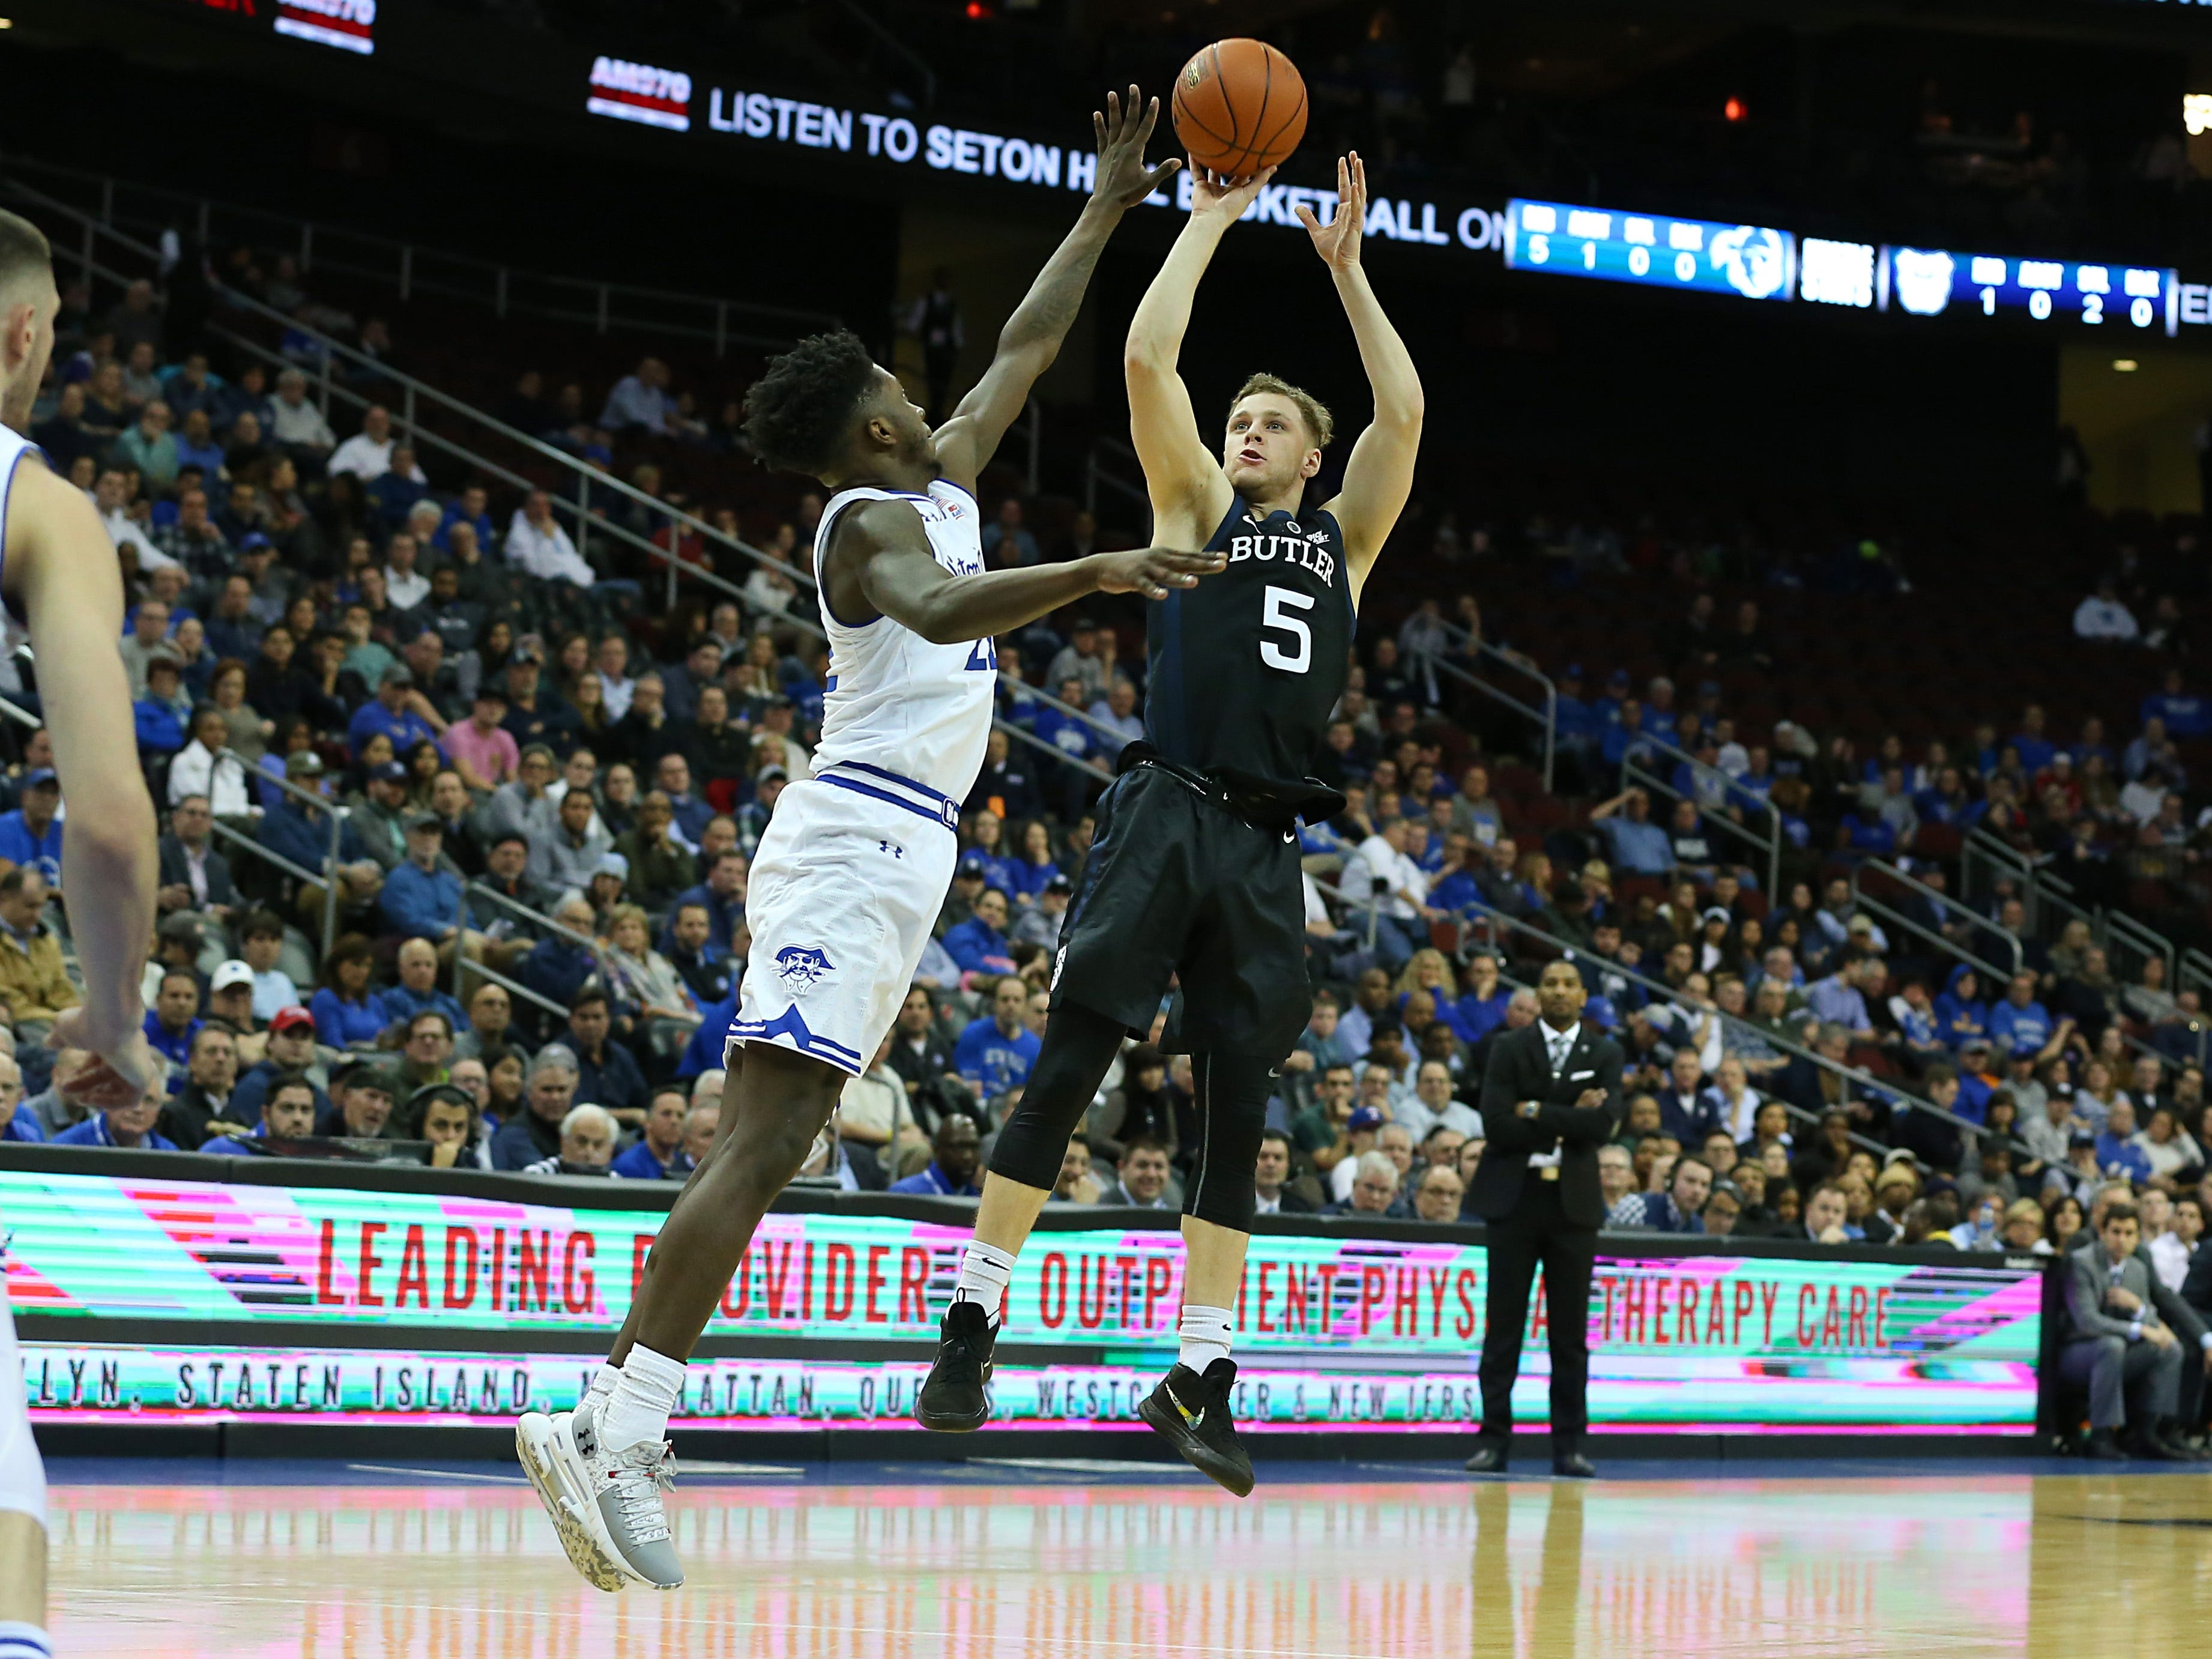 Jan 9, 2019; Newark, NJ, USA; Butler Bulldogs guard Paul Jorgensen (5) shoots the ball as Seton Hall Pirates guard Myles Cale (22) defends during the first half at Prudential Center. Mandatory Credit: Vincent Carchietta-USA TODAY Sports